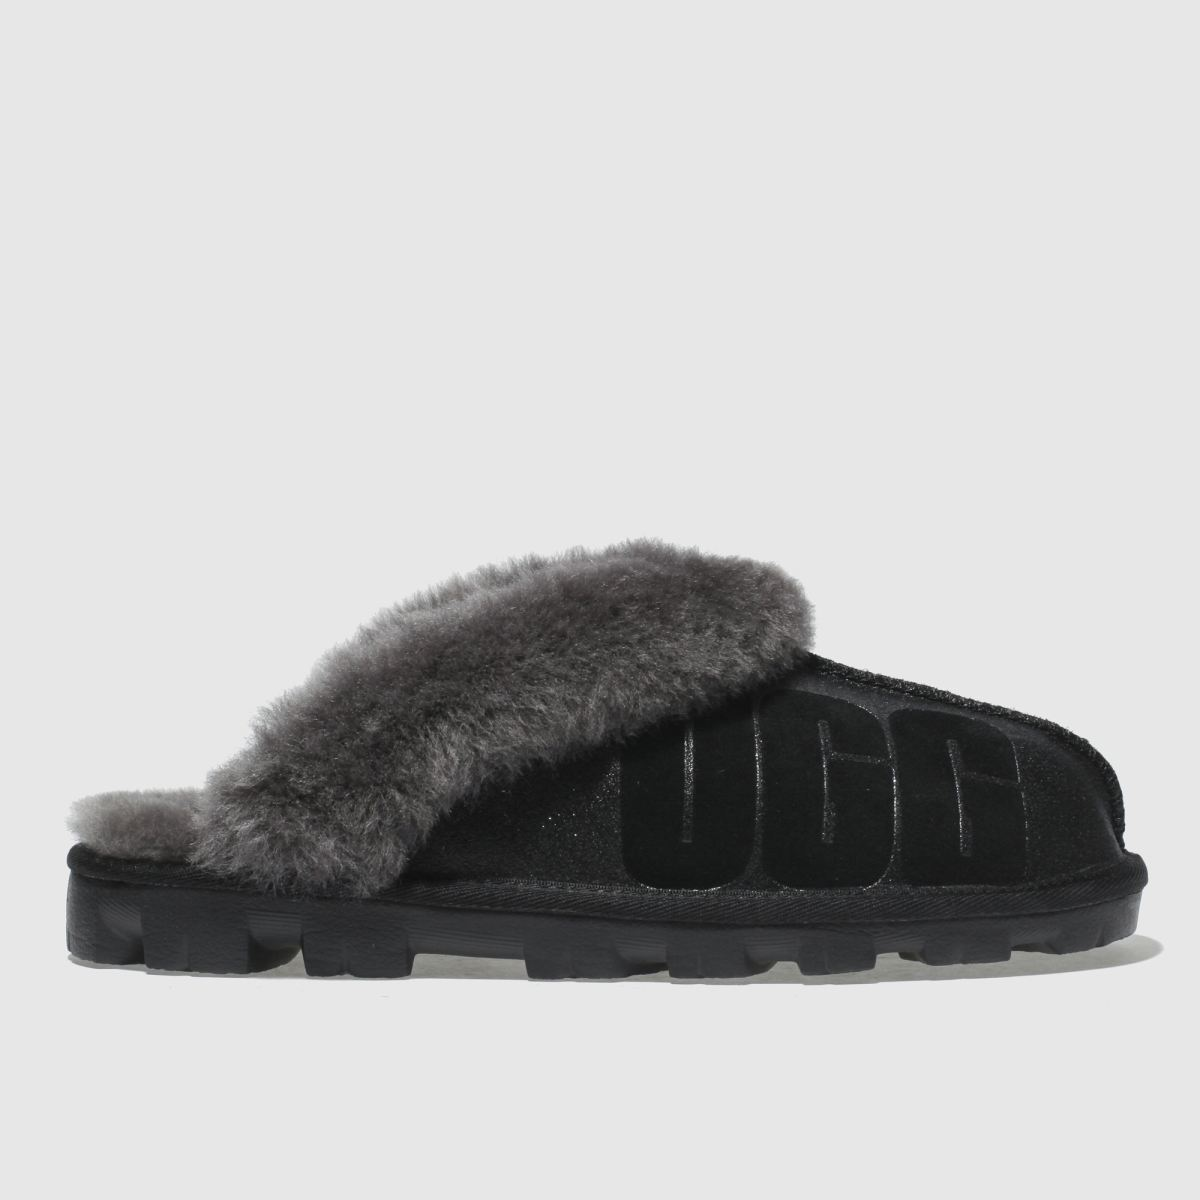 Ugg Black Coquette Sparkle Slippers